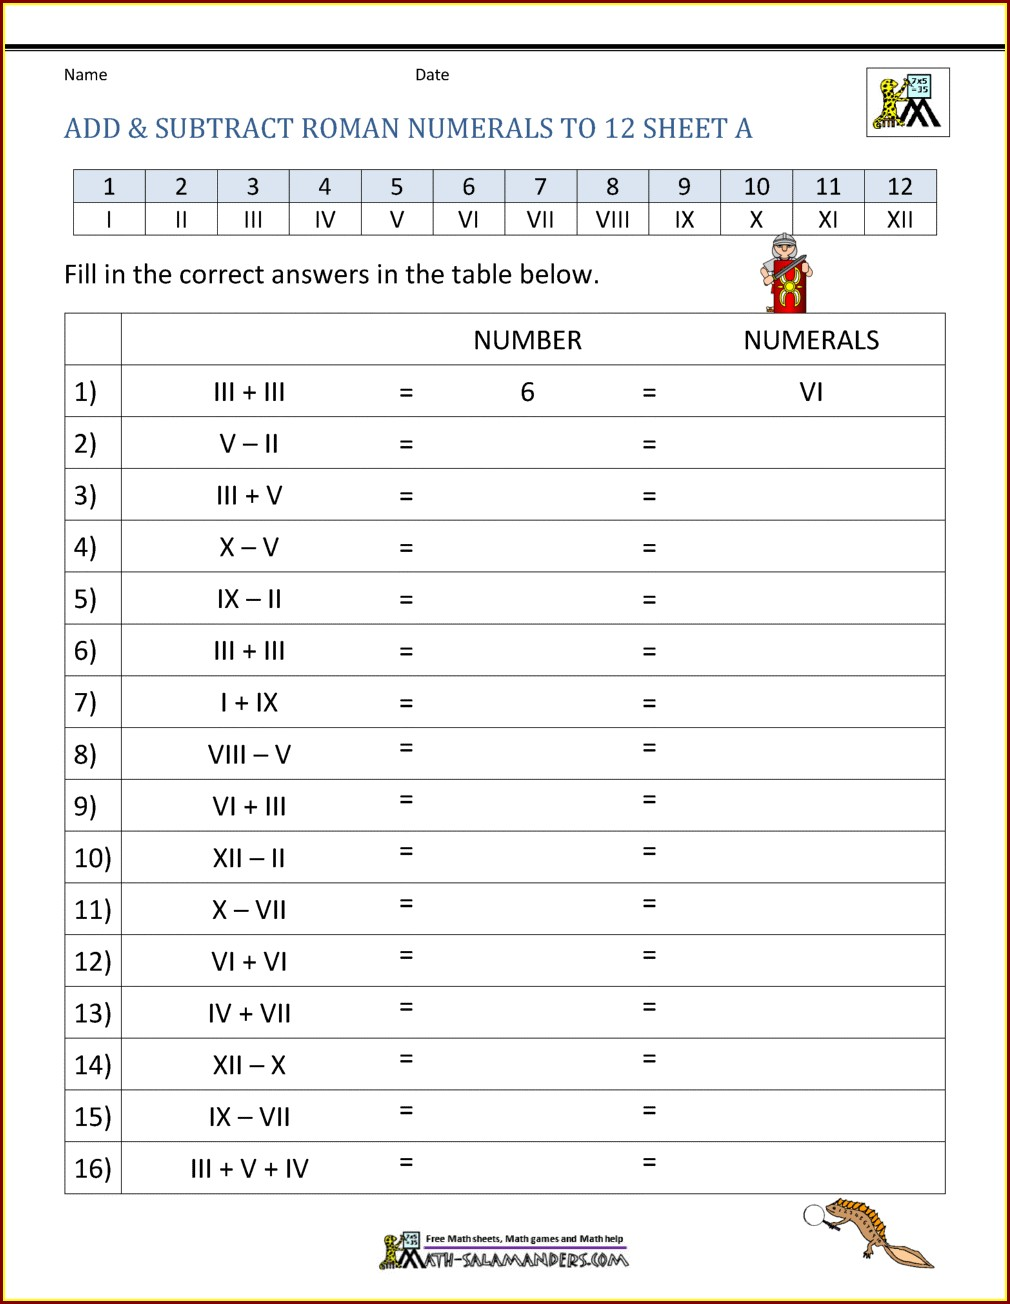 Roman Numerals Worksheet With Answers